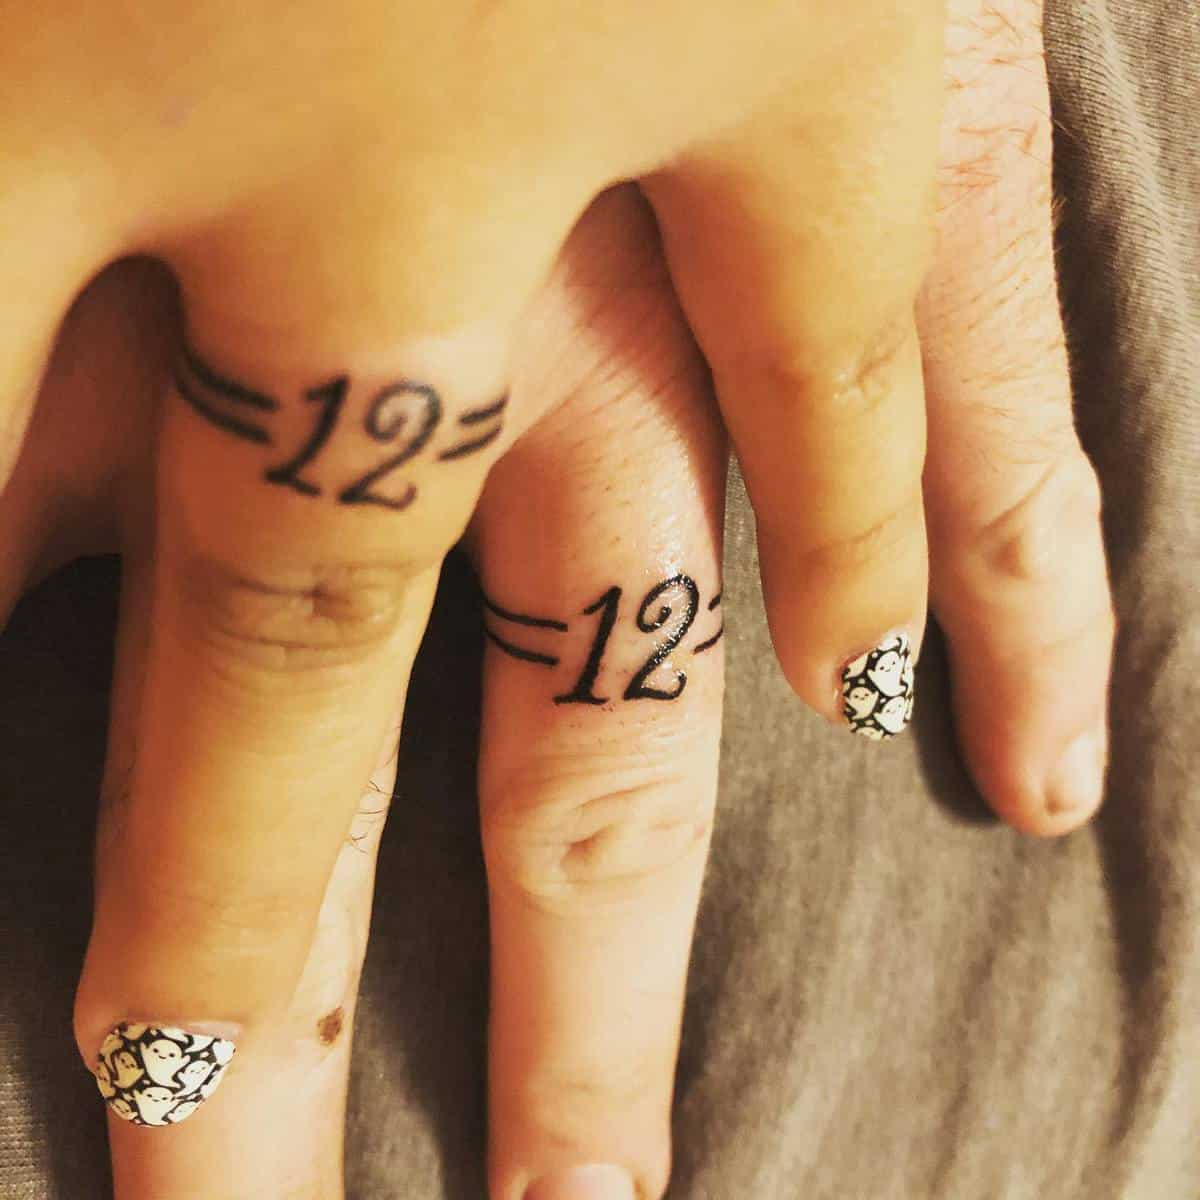 Married Matching Tattoos alicia_johnson74